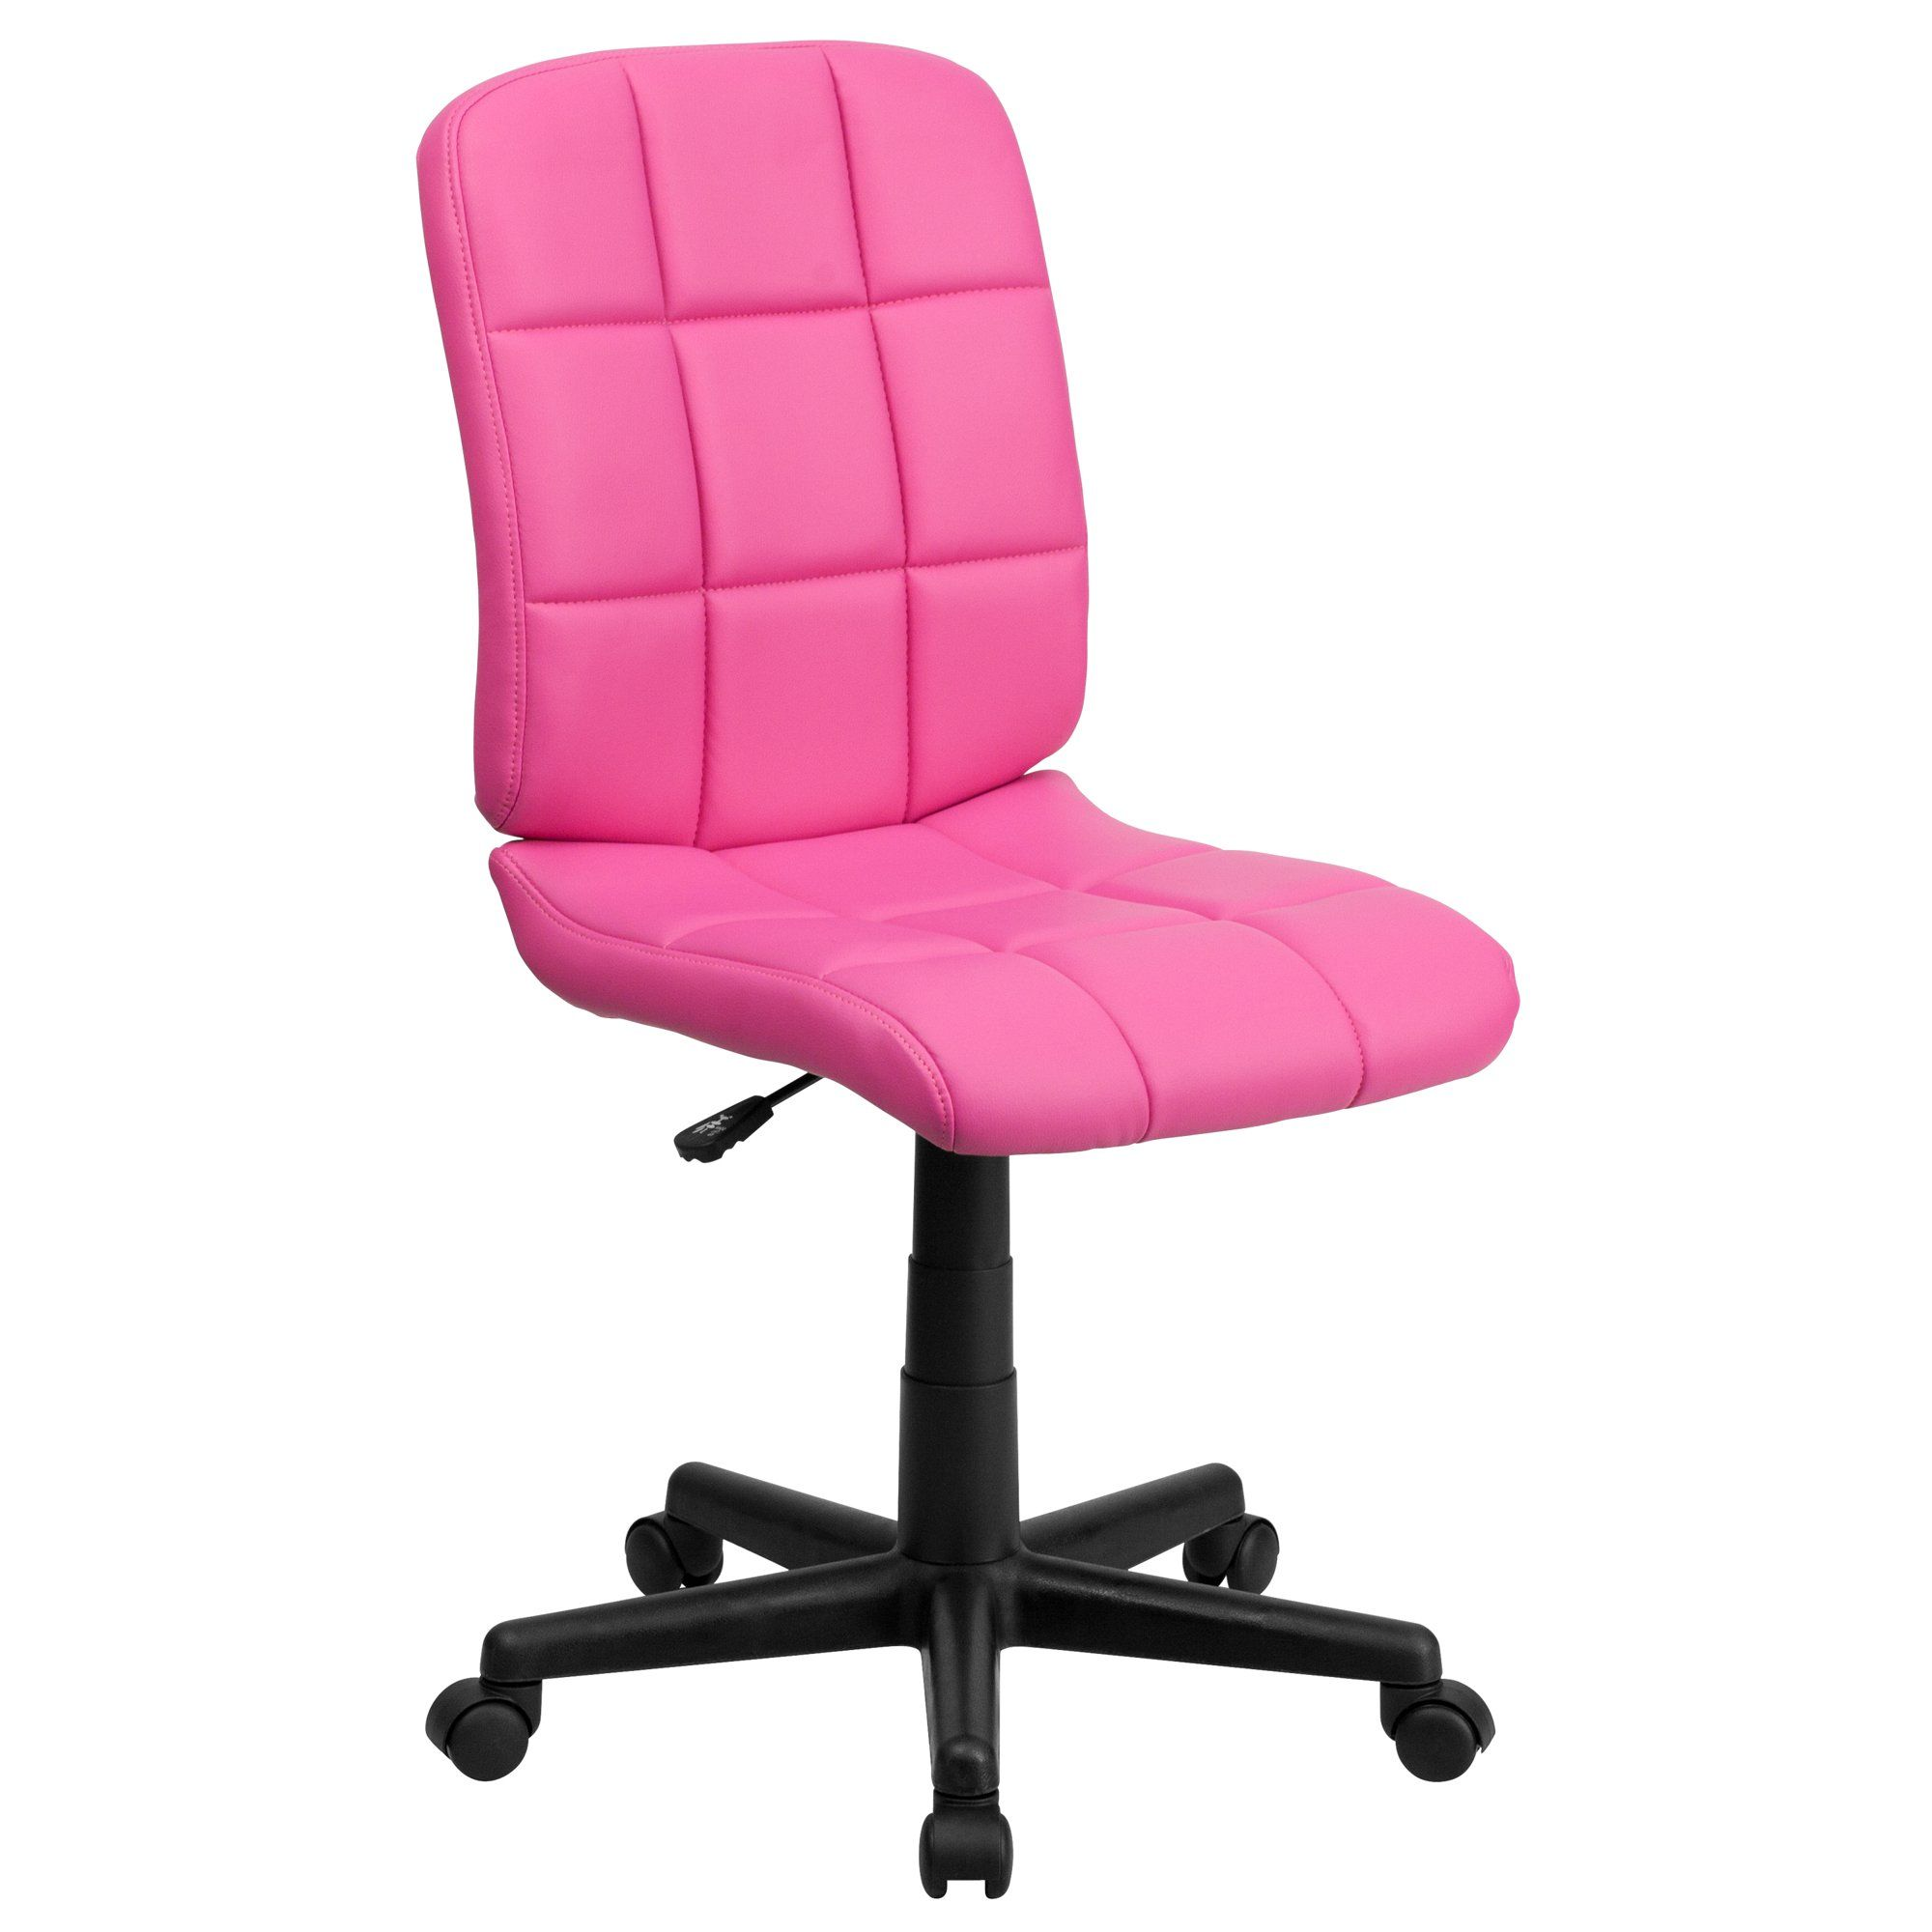 Flash Furniture Mid Back Quilted Vinyl Swivel Armless Task Office Chair Multiple Colors Walmart Com In 2020 Pink Desk Chair Task Chair Flash Furniture